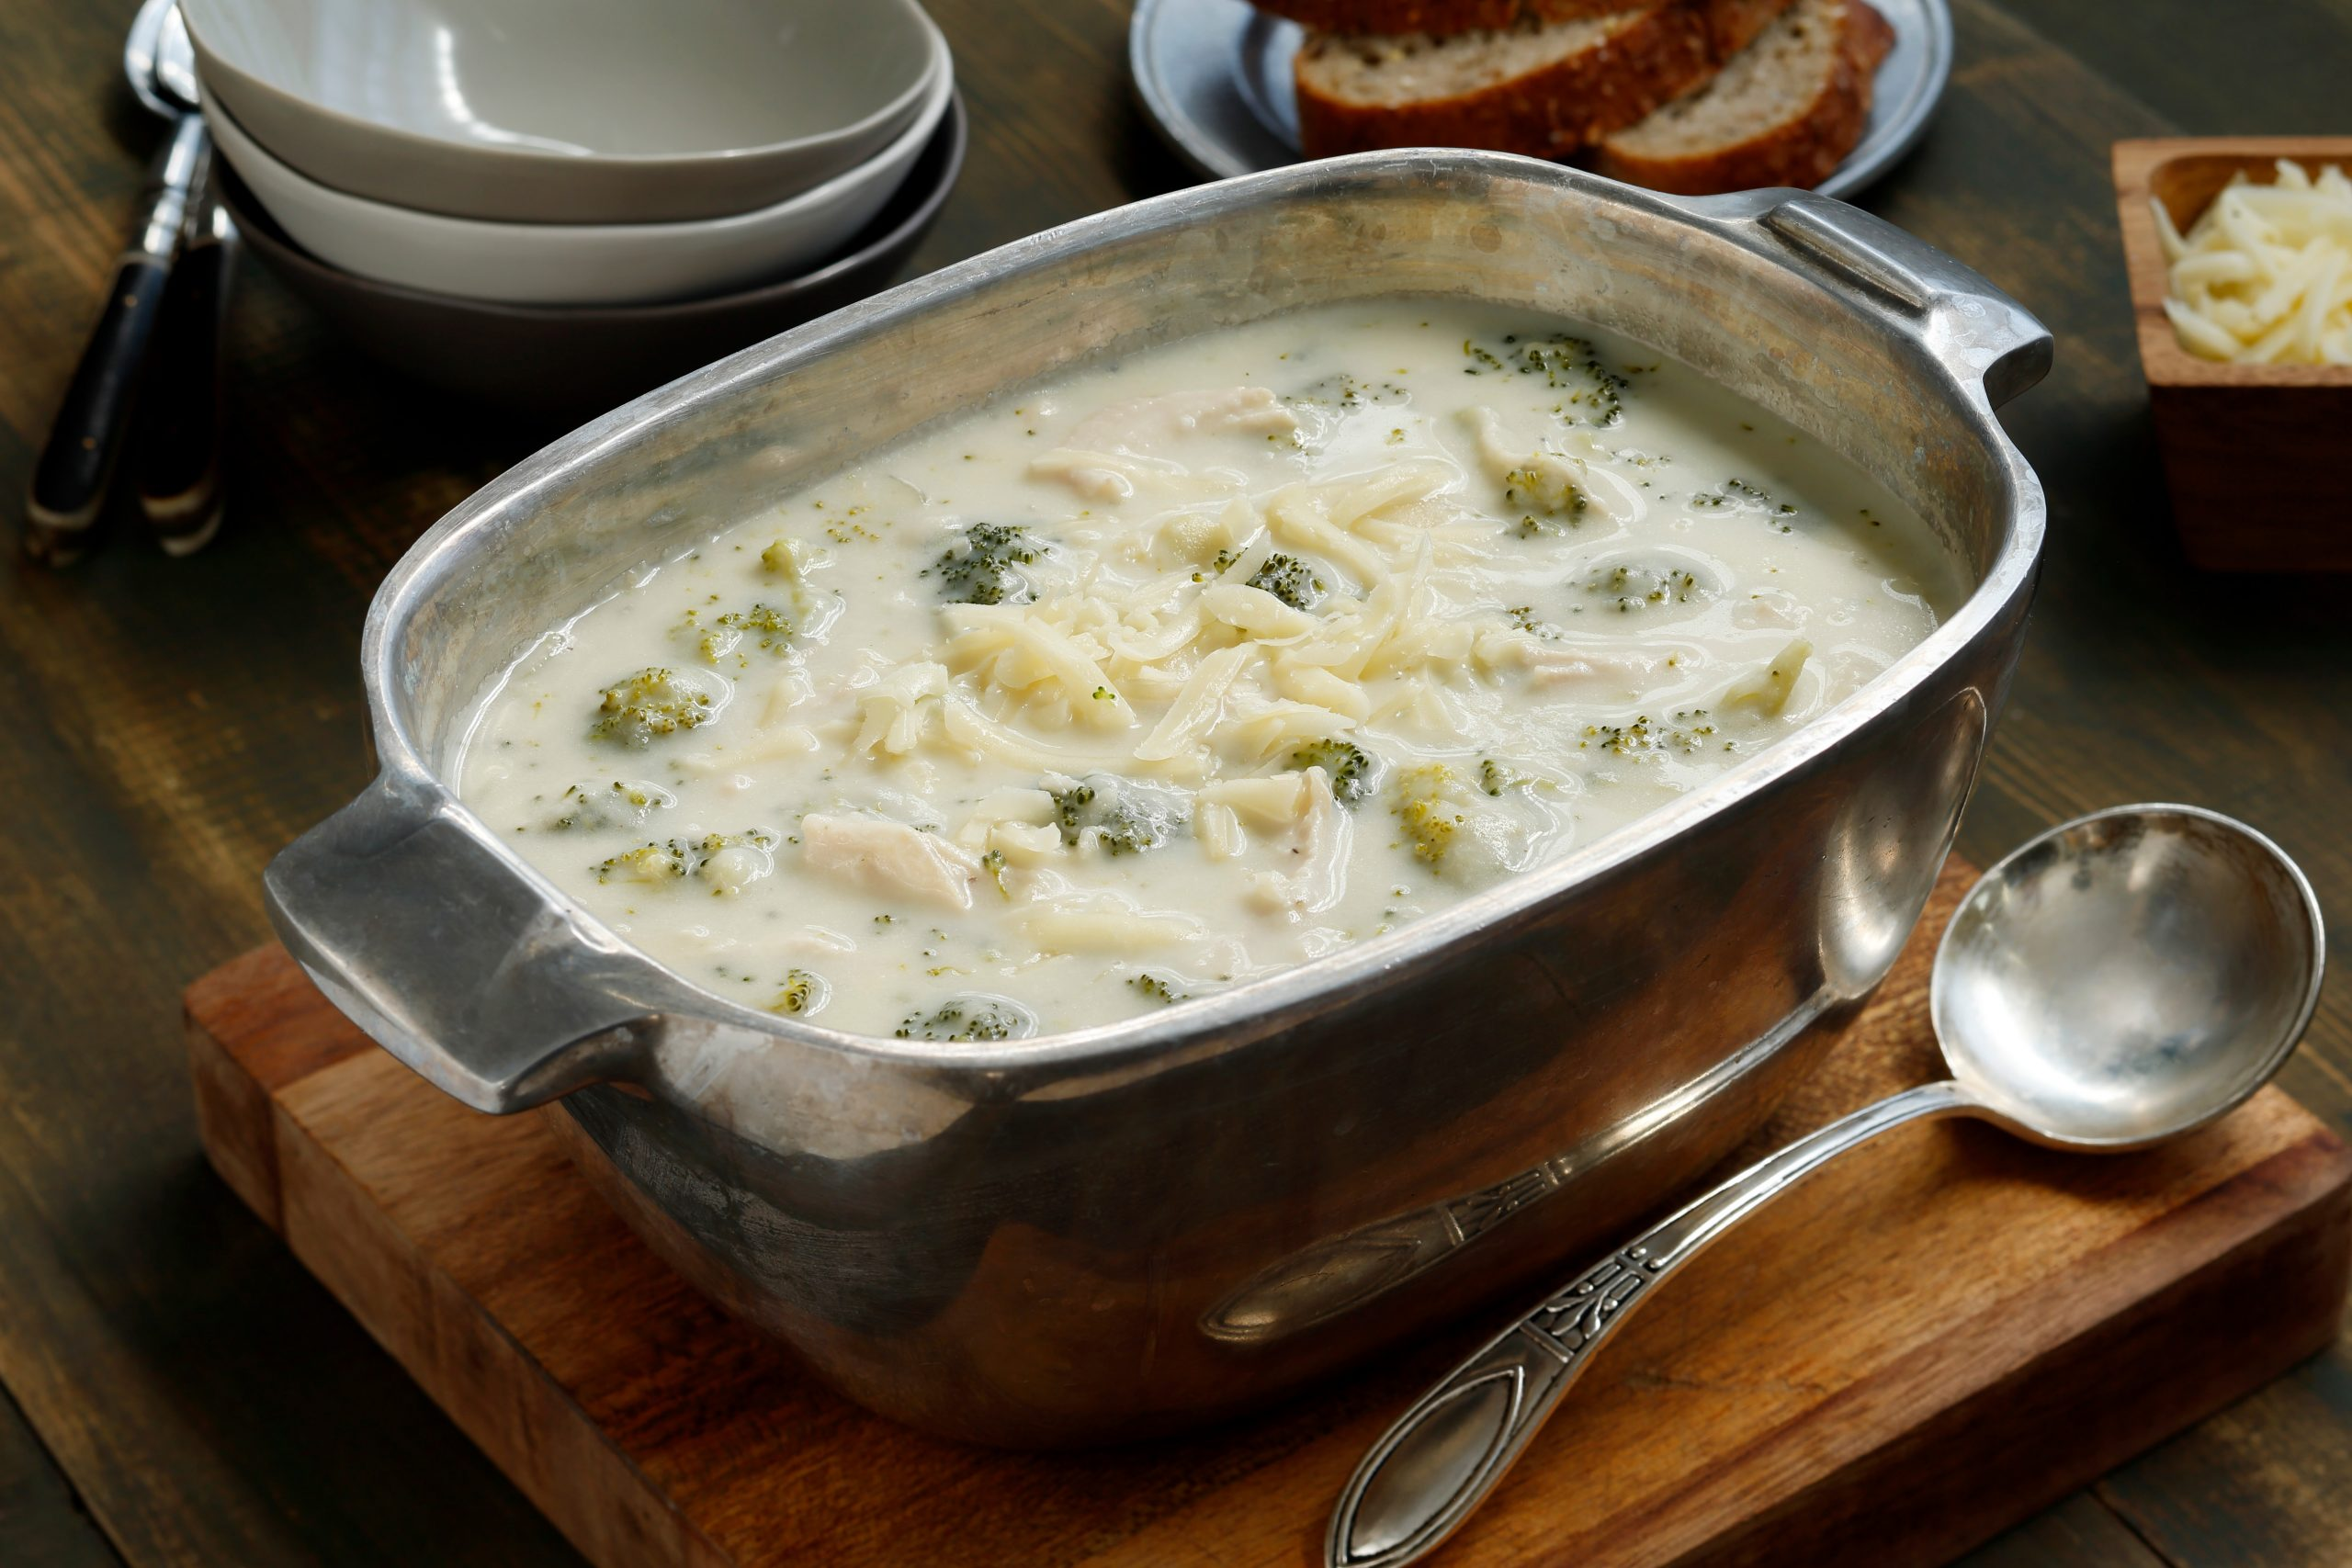 Idahoan Chicken and Broccoli Chowder